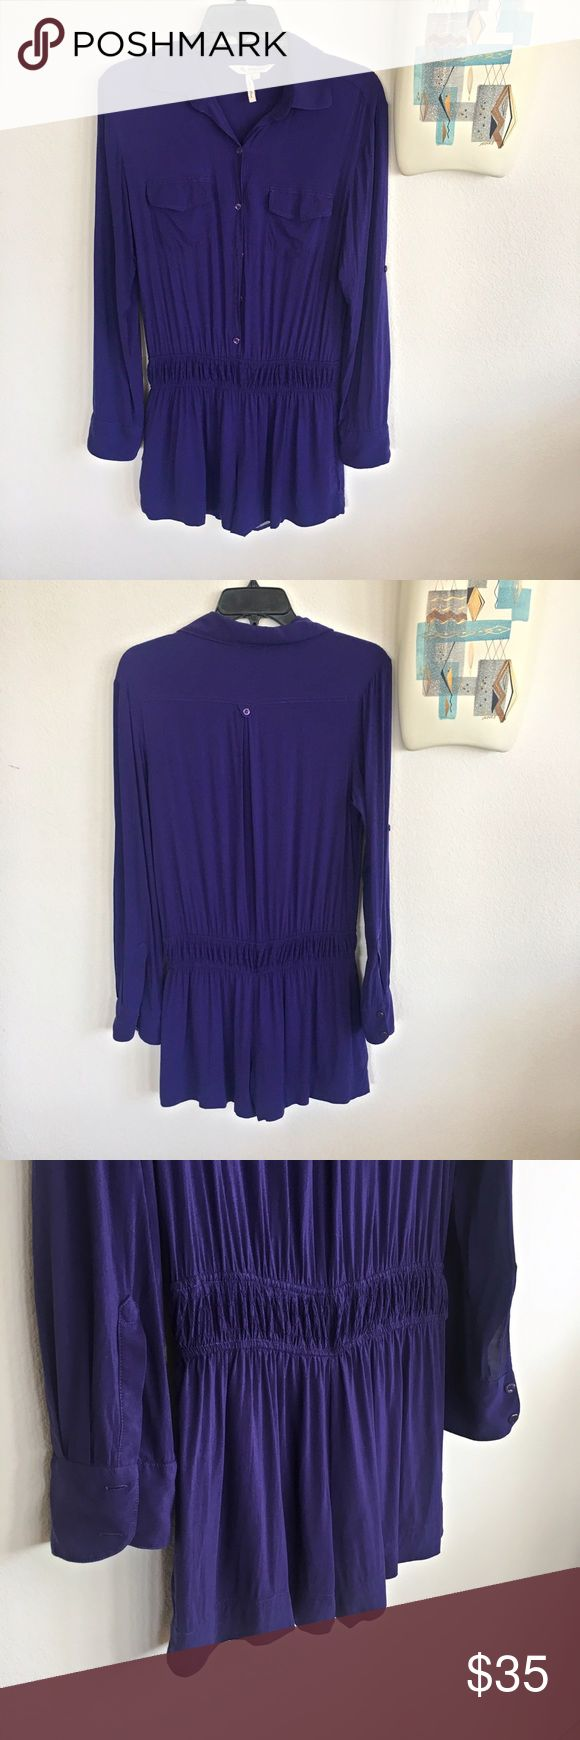 BCBGeneration Romper Bluish purple long sleeve romper from BCBG with the option to button up sleeves. Romper is lined from the waist down. Banded waist. Two breast pockets. Button down to the waist. This is so cute! The color is midnight blue but it has a purple tint to it. There are a few blemishes which are very hard to see. Please see pictures 6 and 7.  Two Fabric blemish on the back of romper, but it is difficult to see when on. In all around good condition. BCBGeneration Pants Jumpsuits…